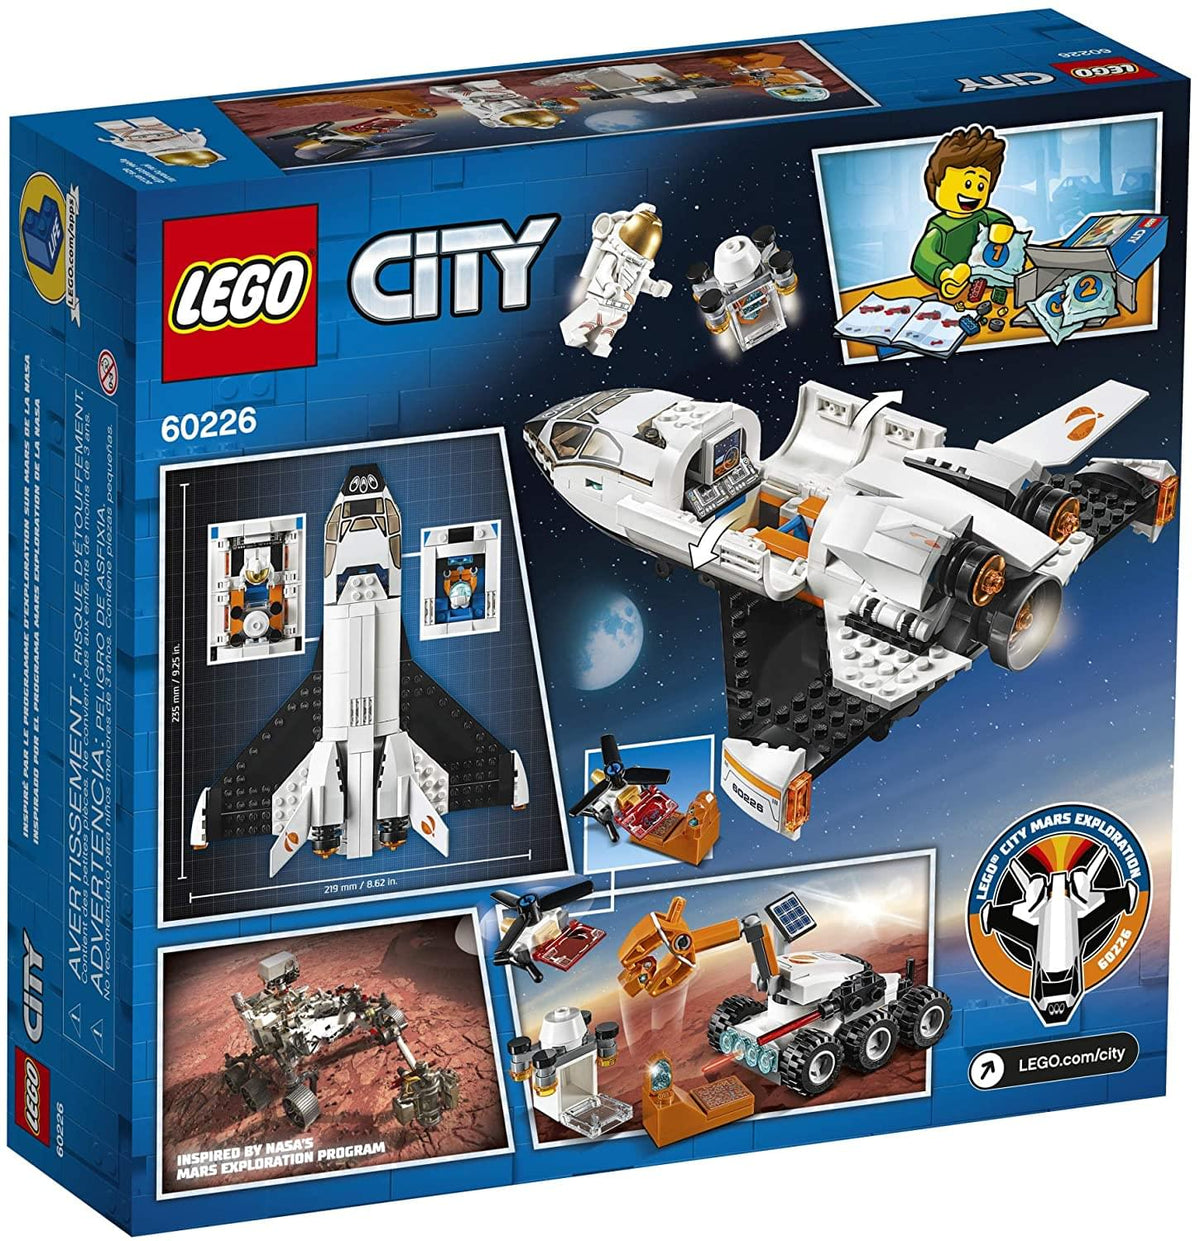 LEGO City 60226 Mars Research Shuttle 273 Piece Building Kit